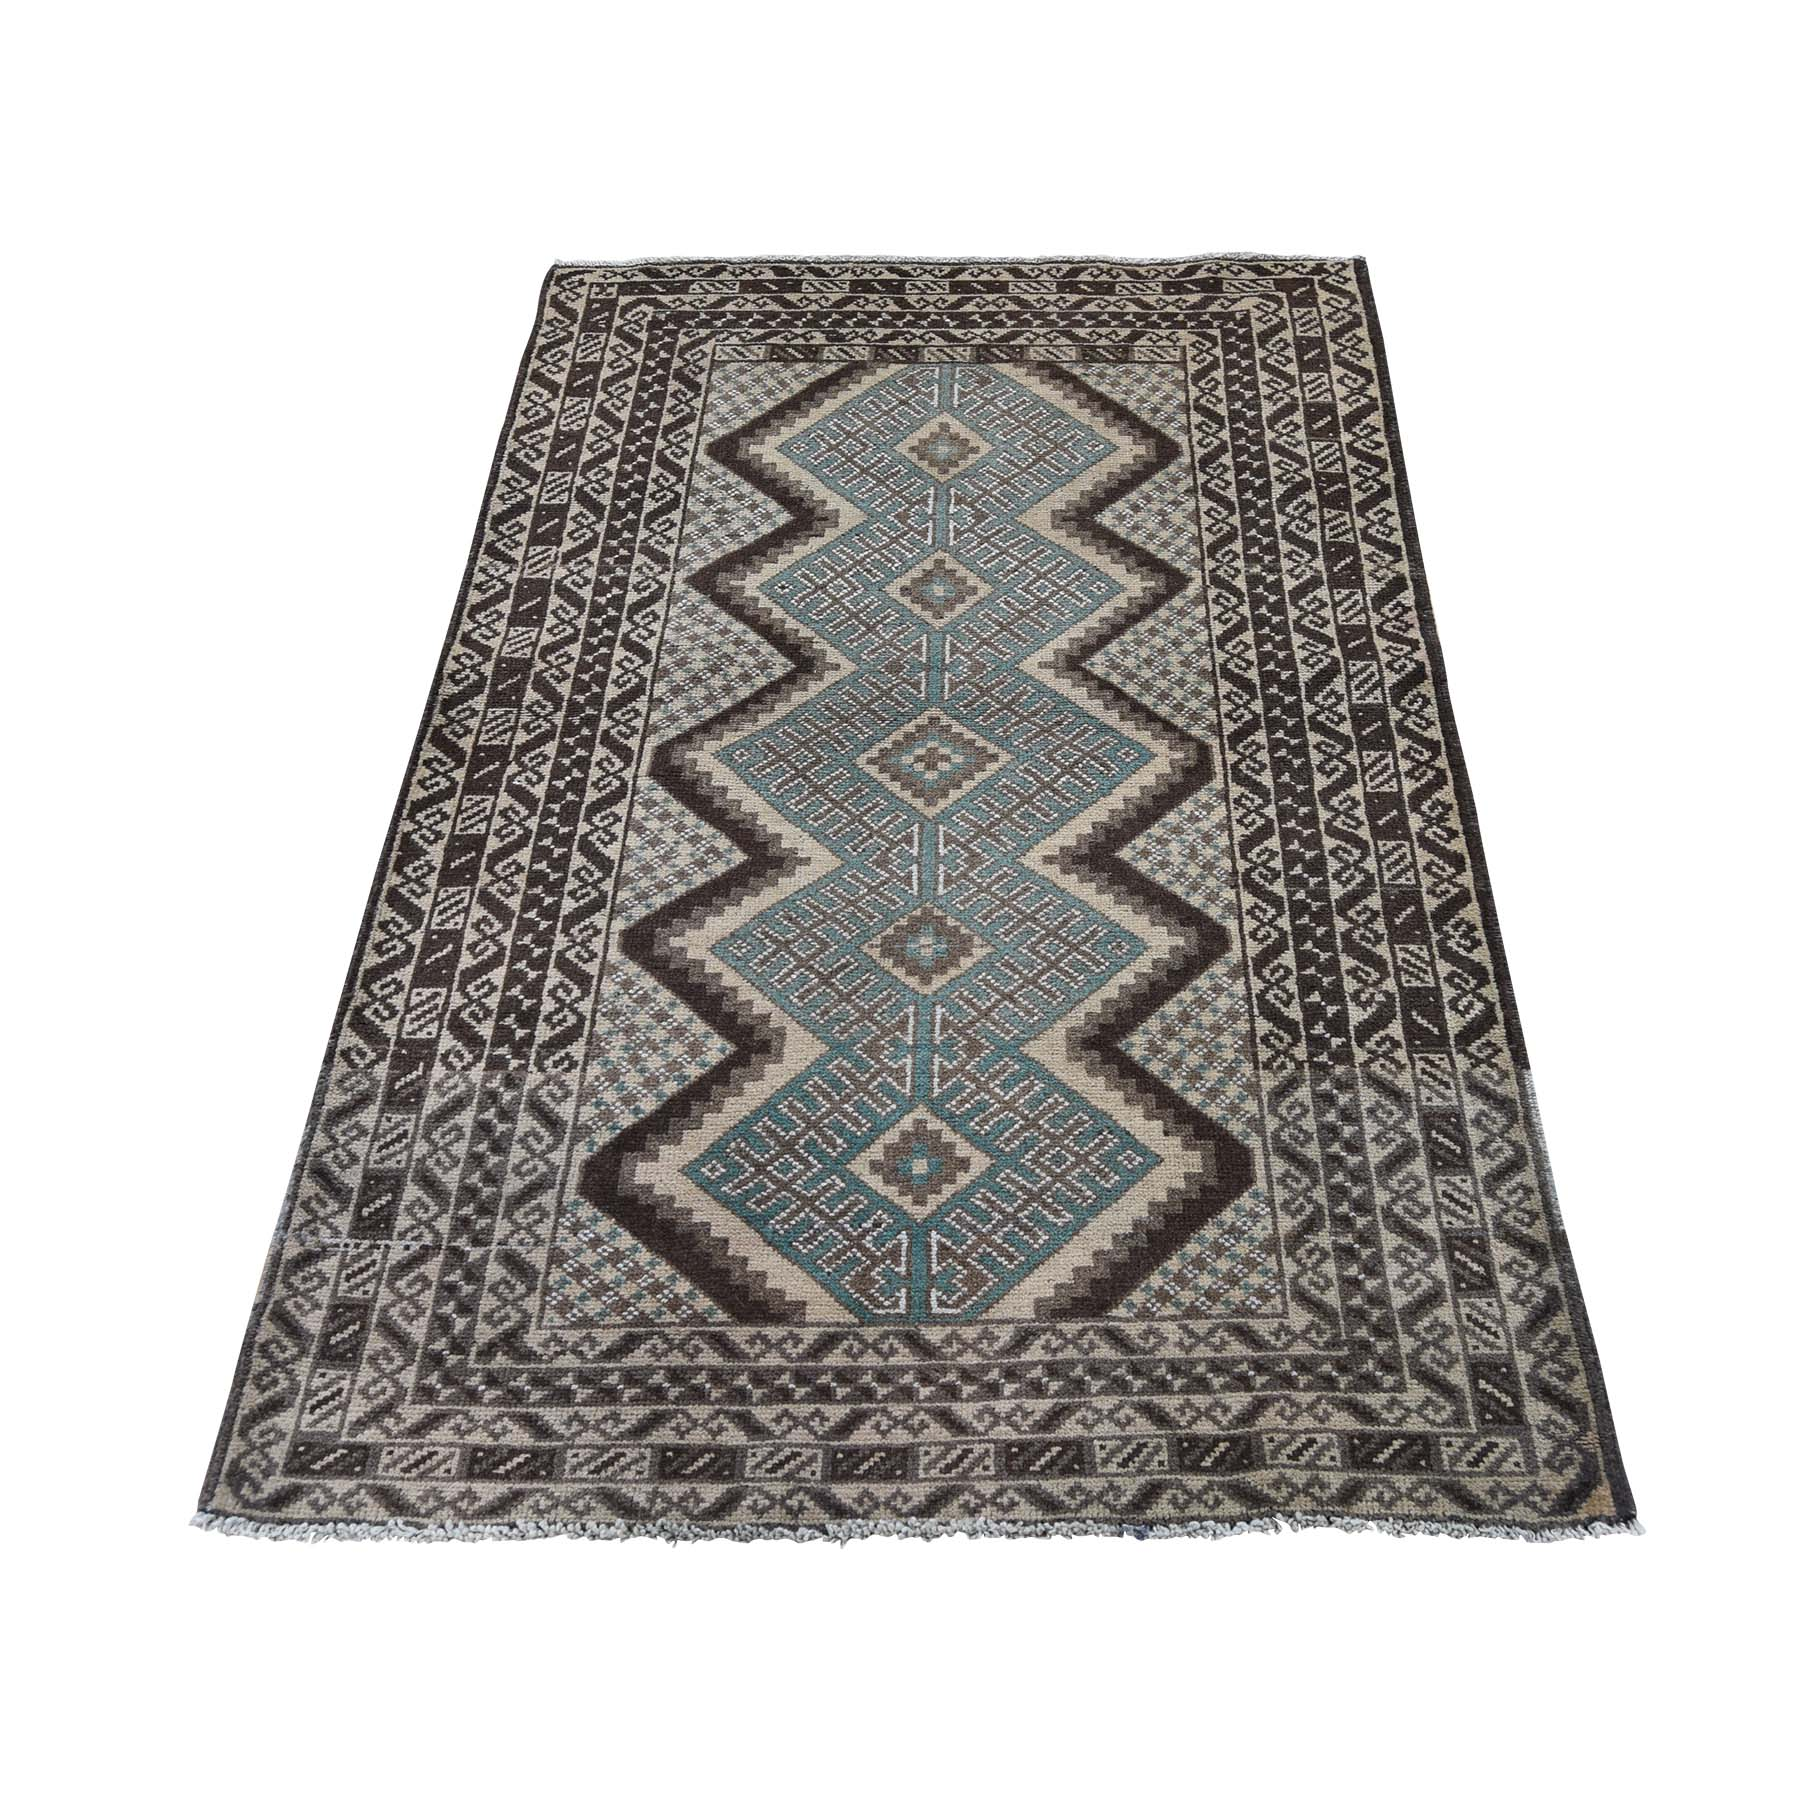 Nomadic And Village Collection Hand Knotted Brown Rug No: 0188994